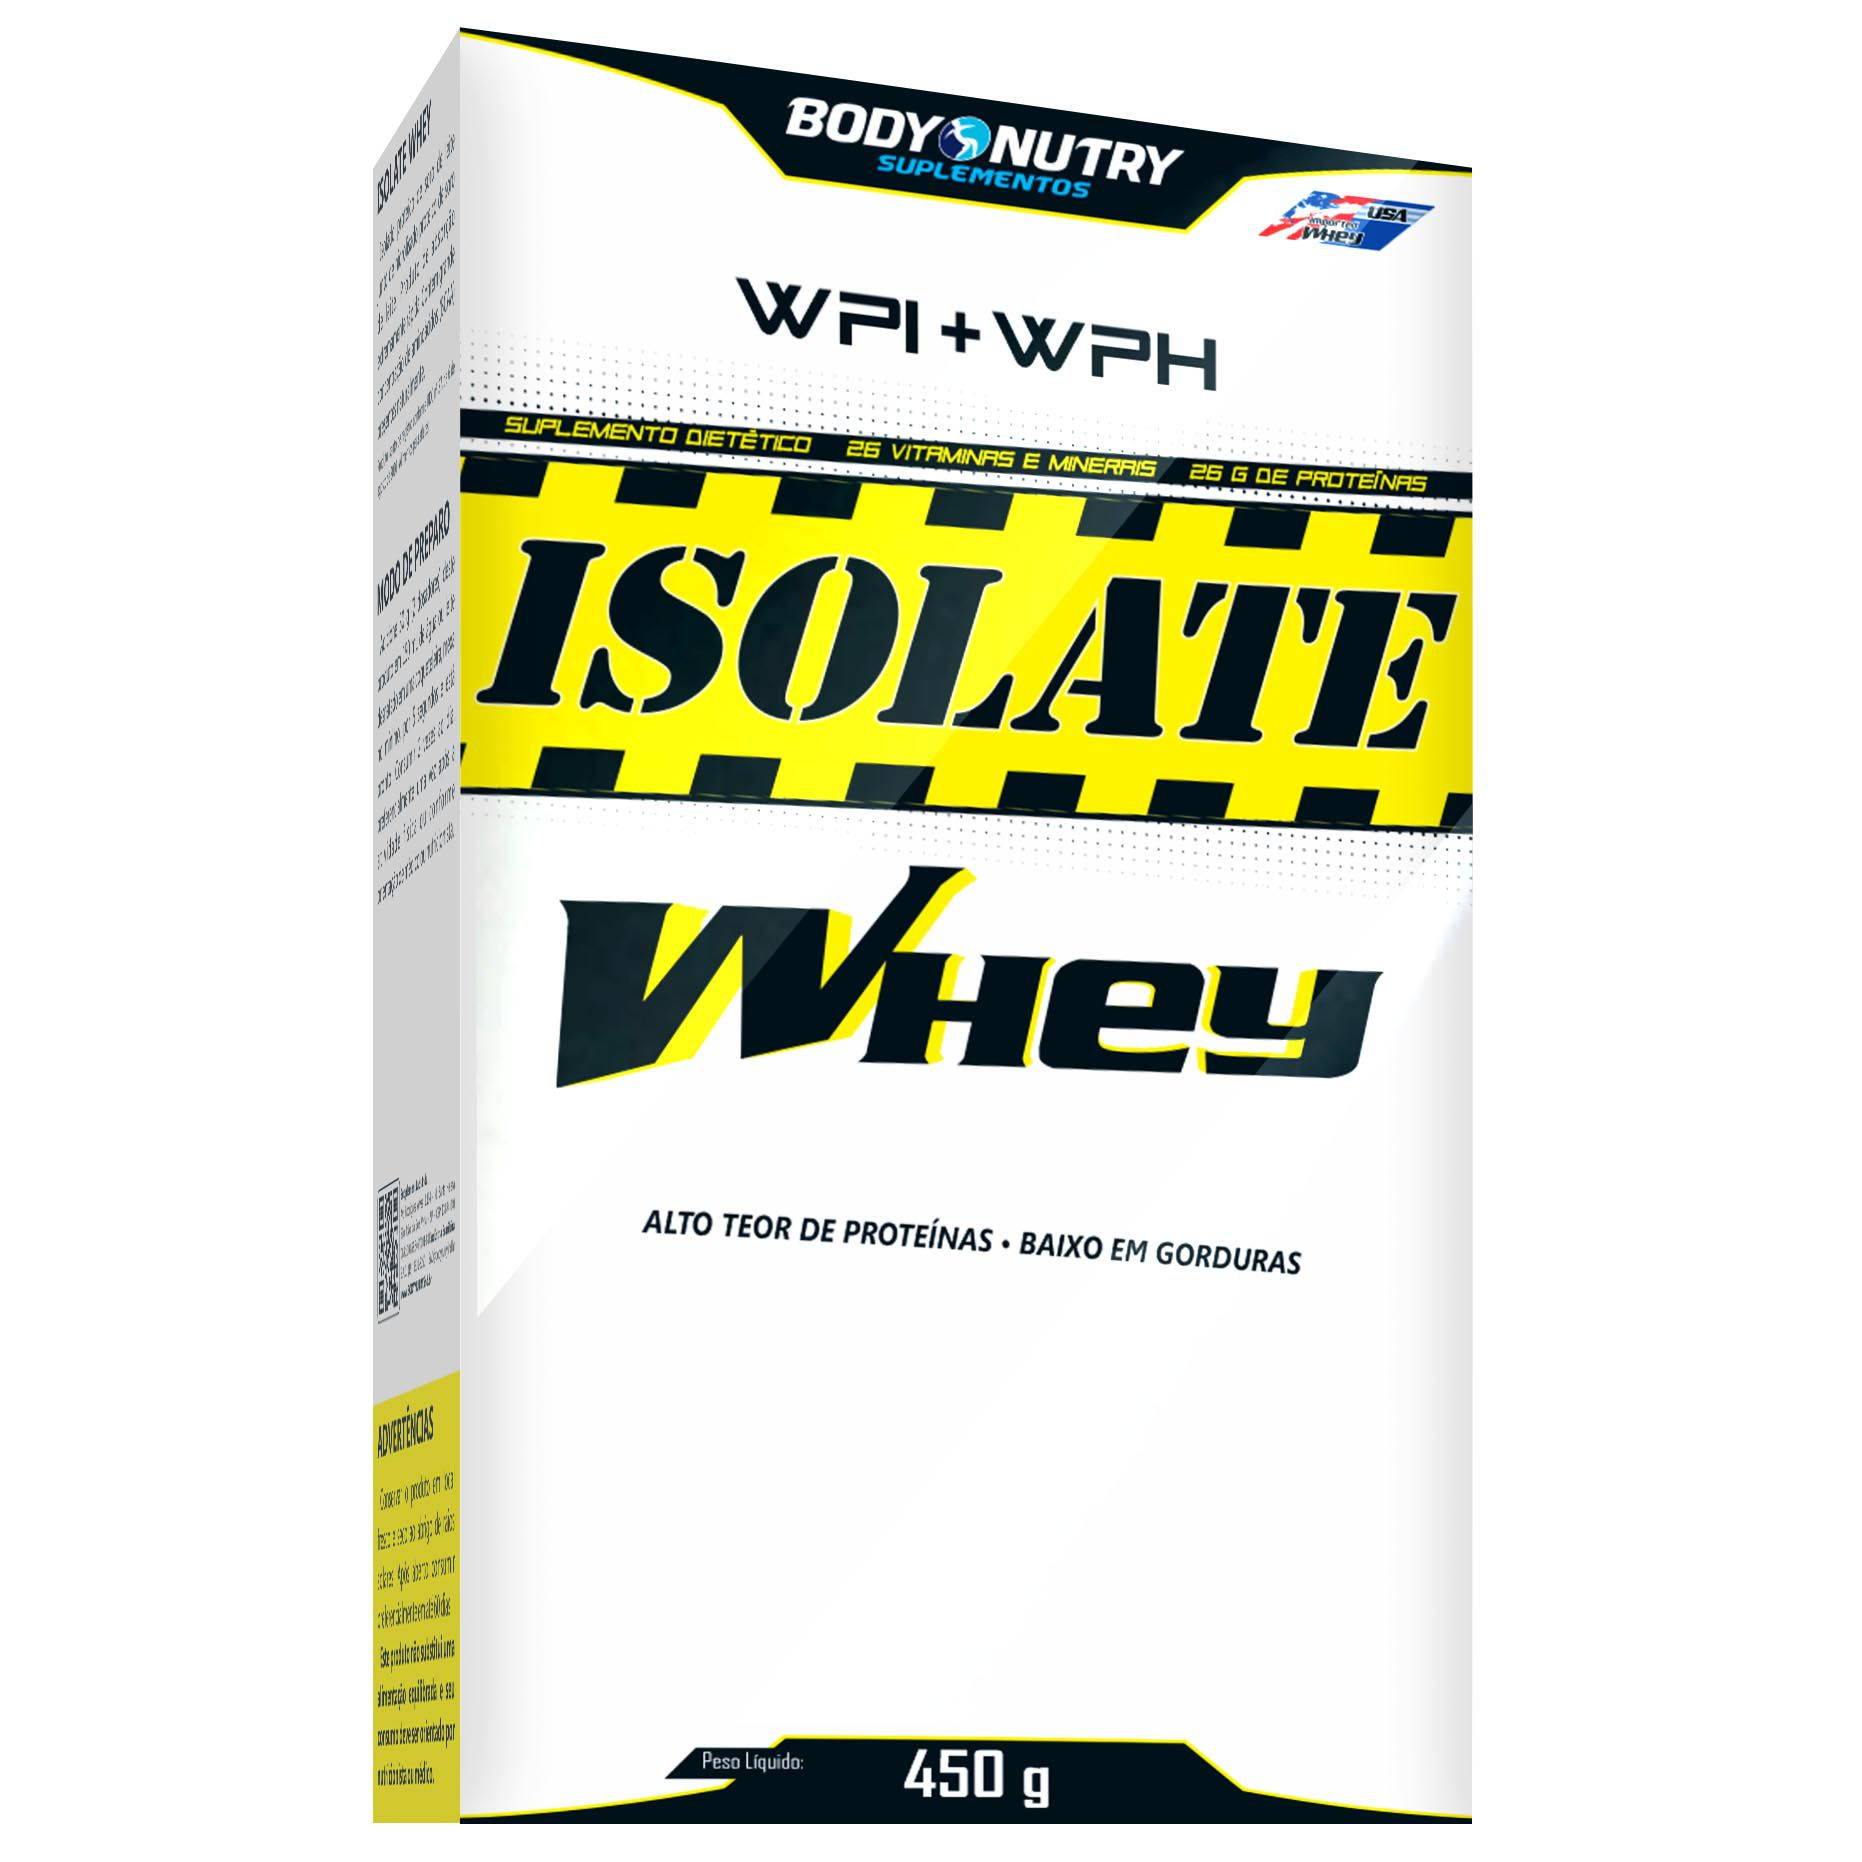 Isolate Whey 450g Body Nutry